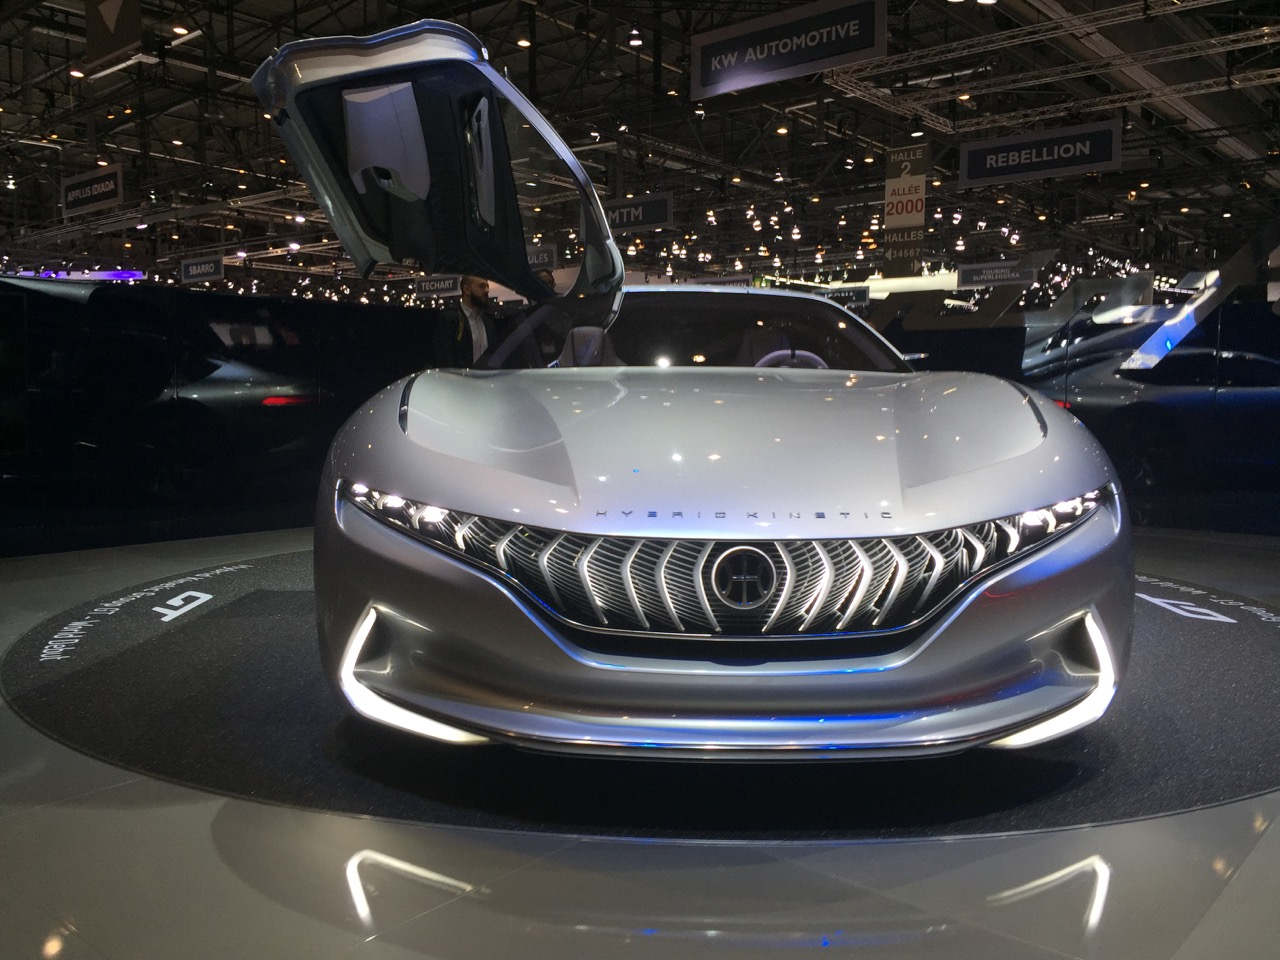 ibb blog : new as well as exciting concepts revealed in geneva motor